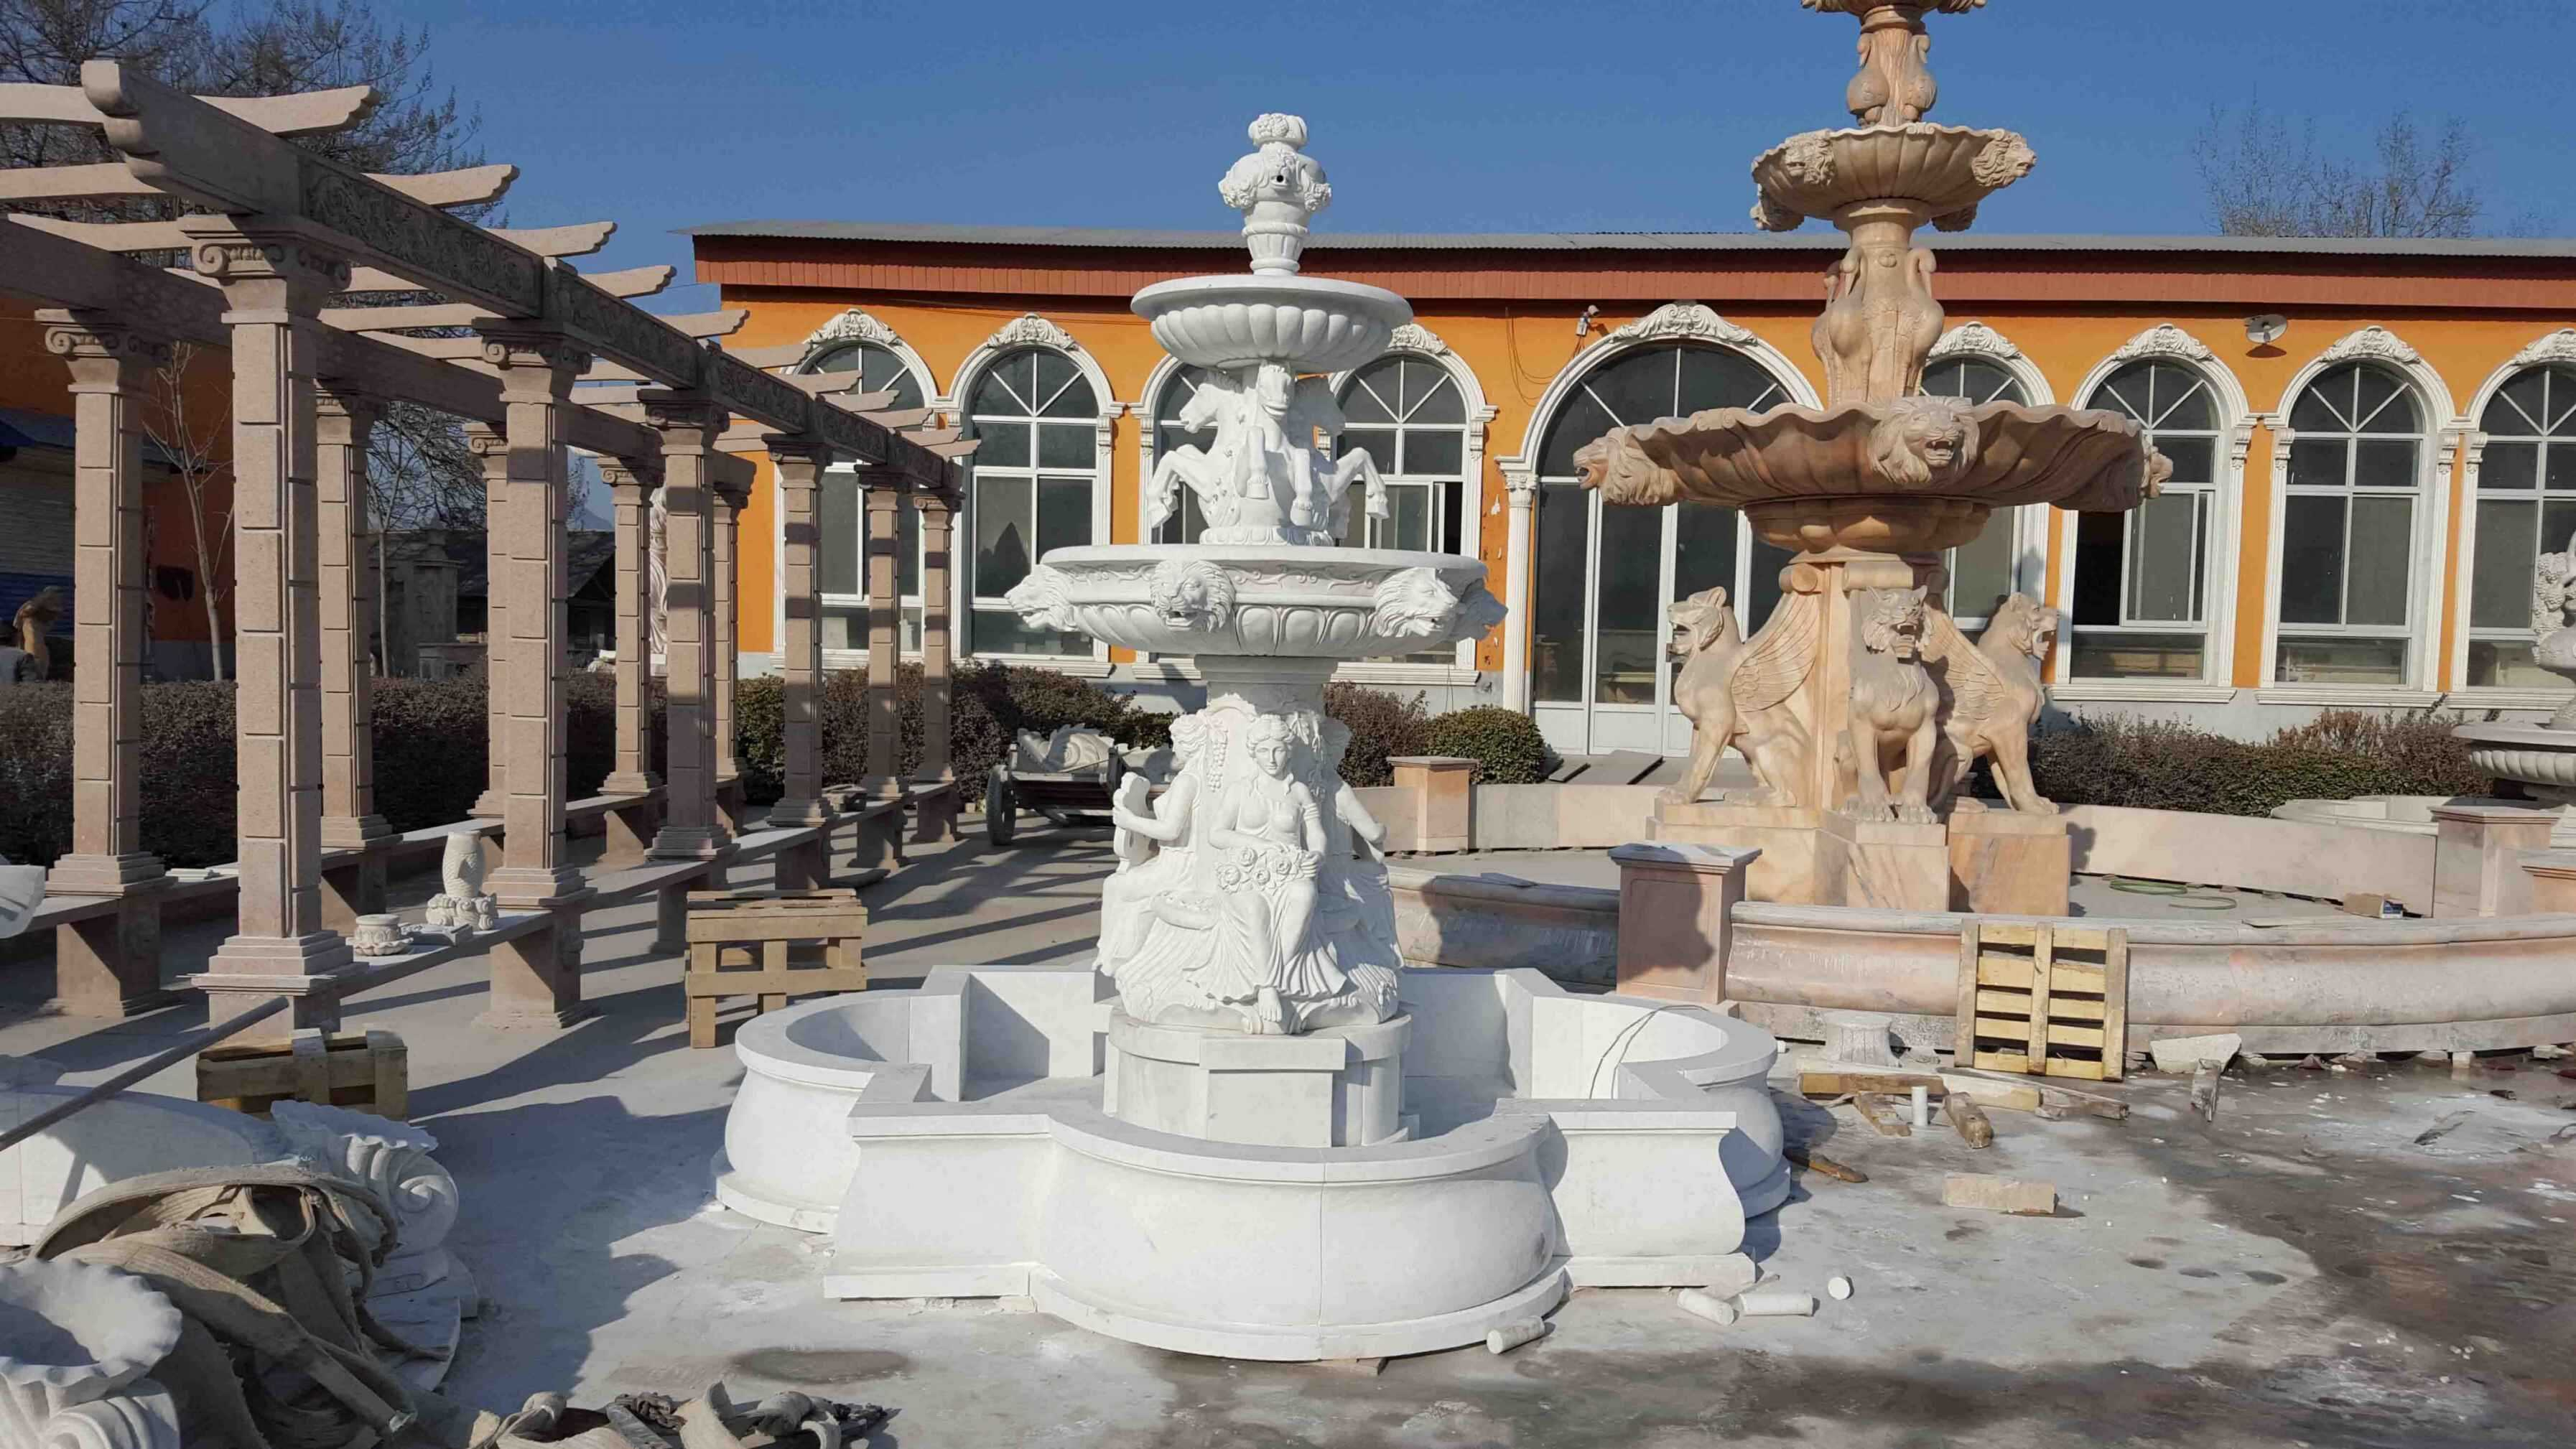 Garden Marble Fountains We Have Made for Our US Client